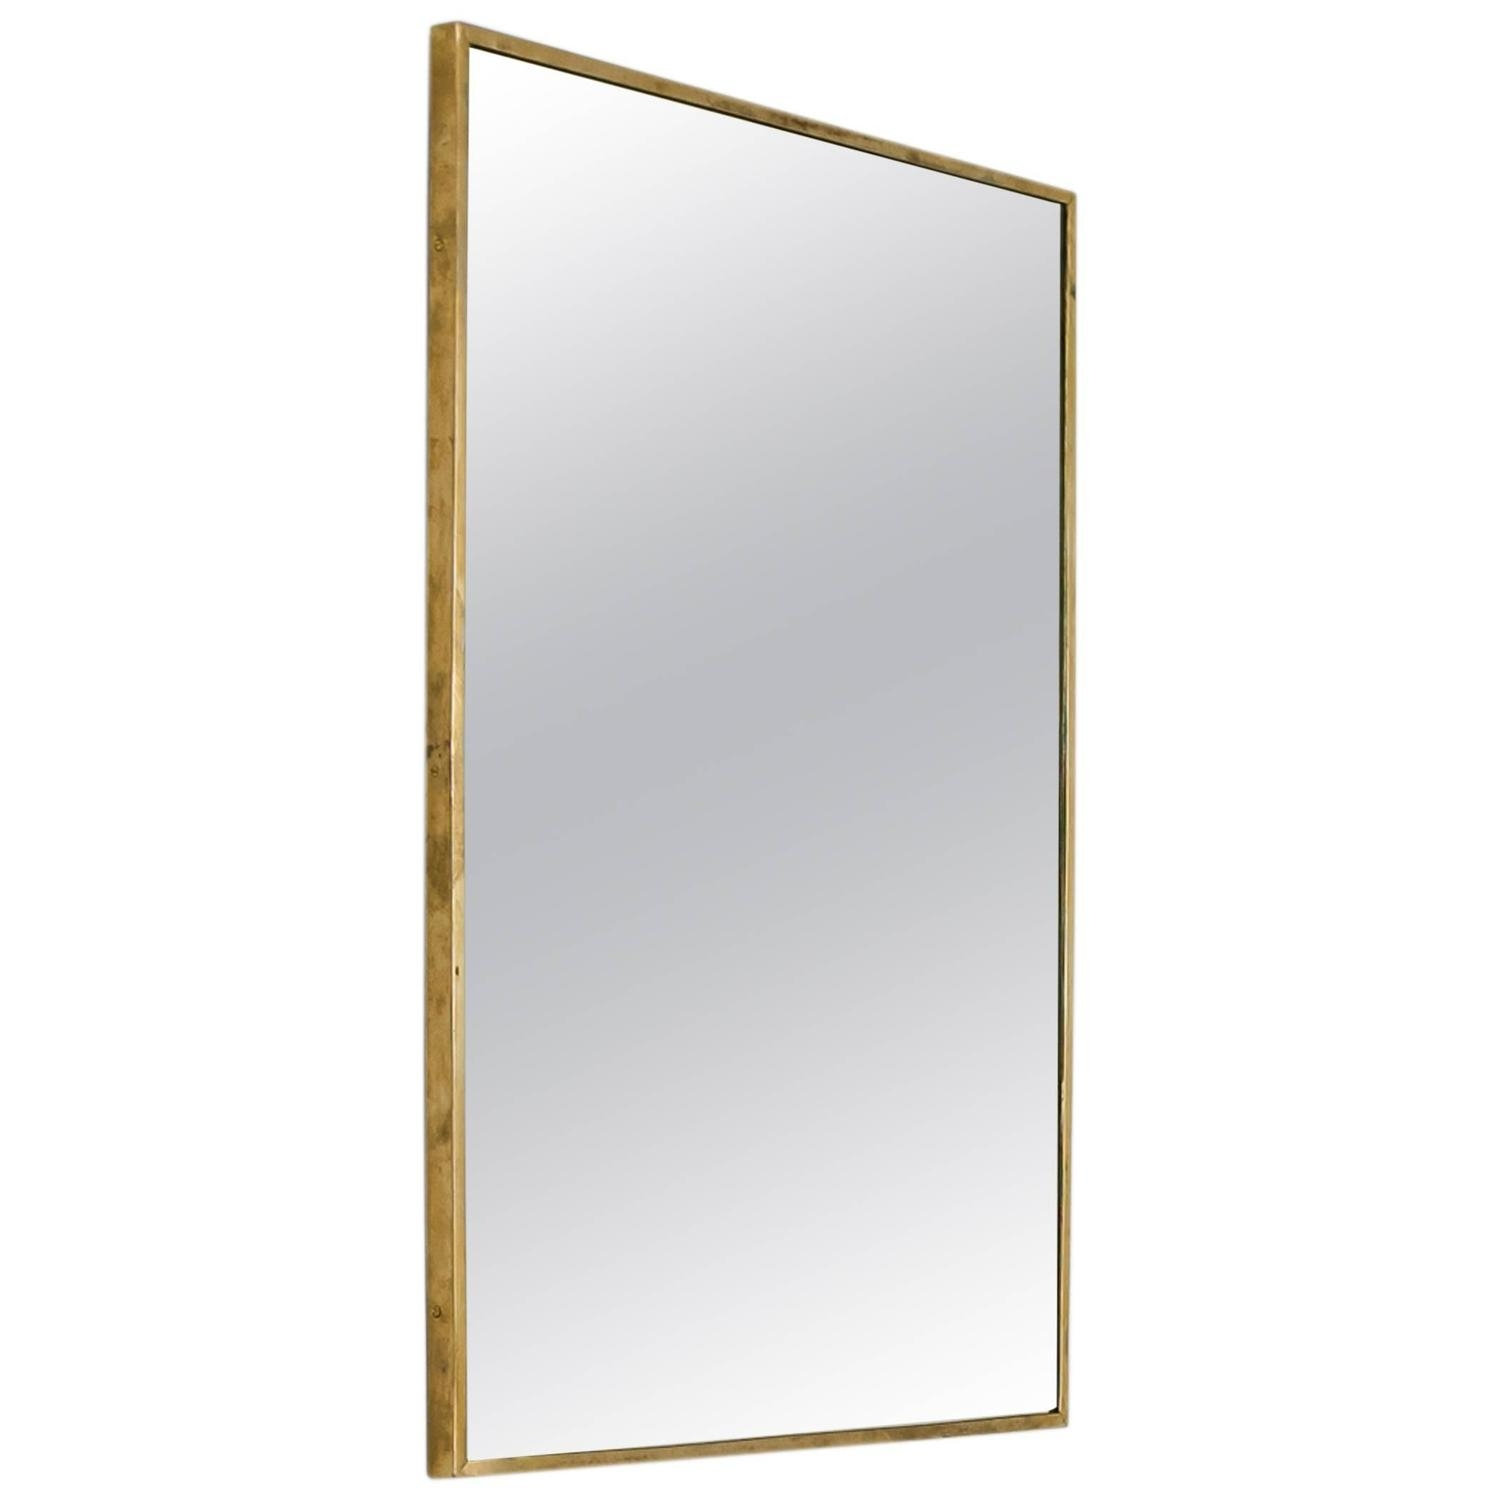 Imposing Design Large Rectangular Wall Mirror Chic Ideas Large With Brass Mirrors For Sale (Image 5 of 15)